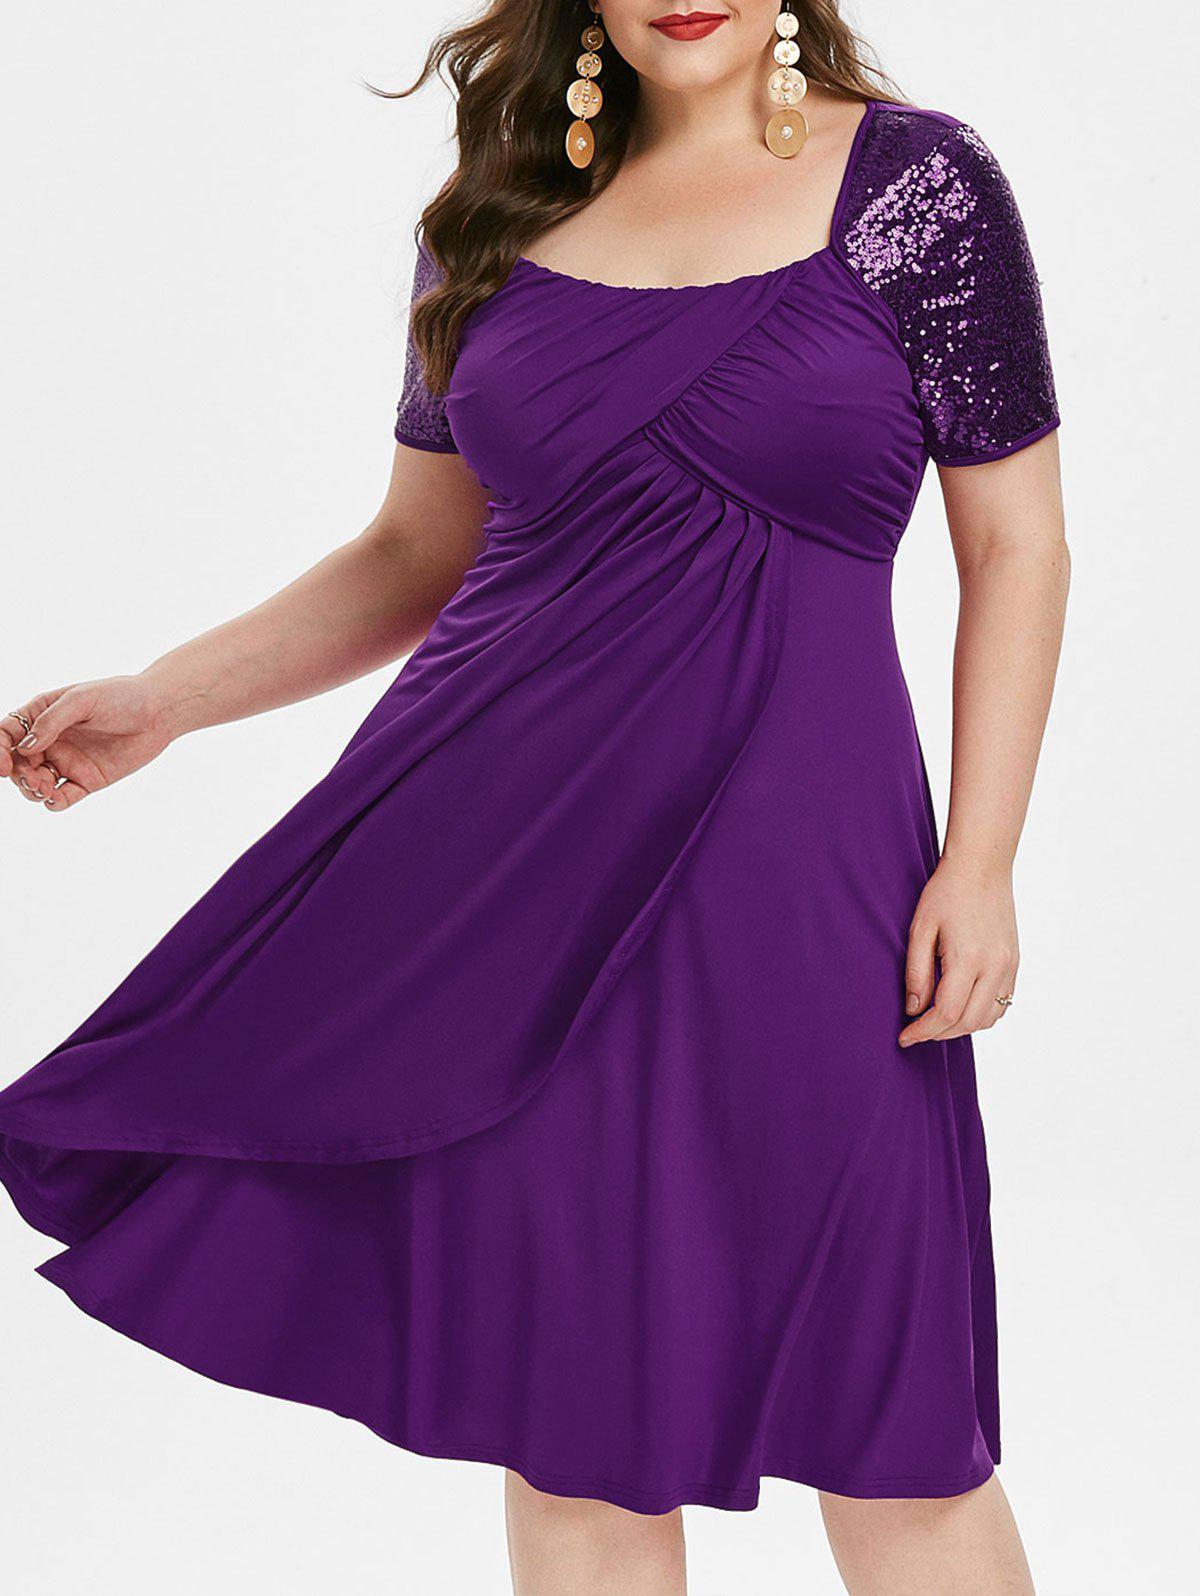 Plus Size Square Collar Fit And Flare Solid Dress - PURPLE AMETHYST 3X